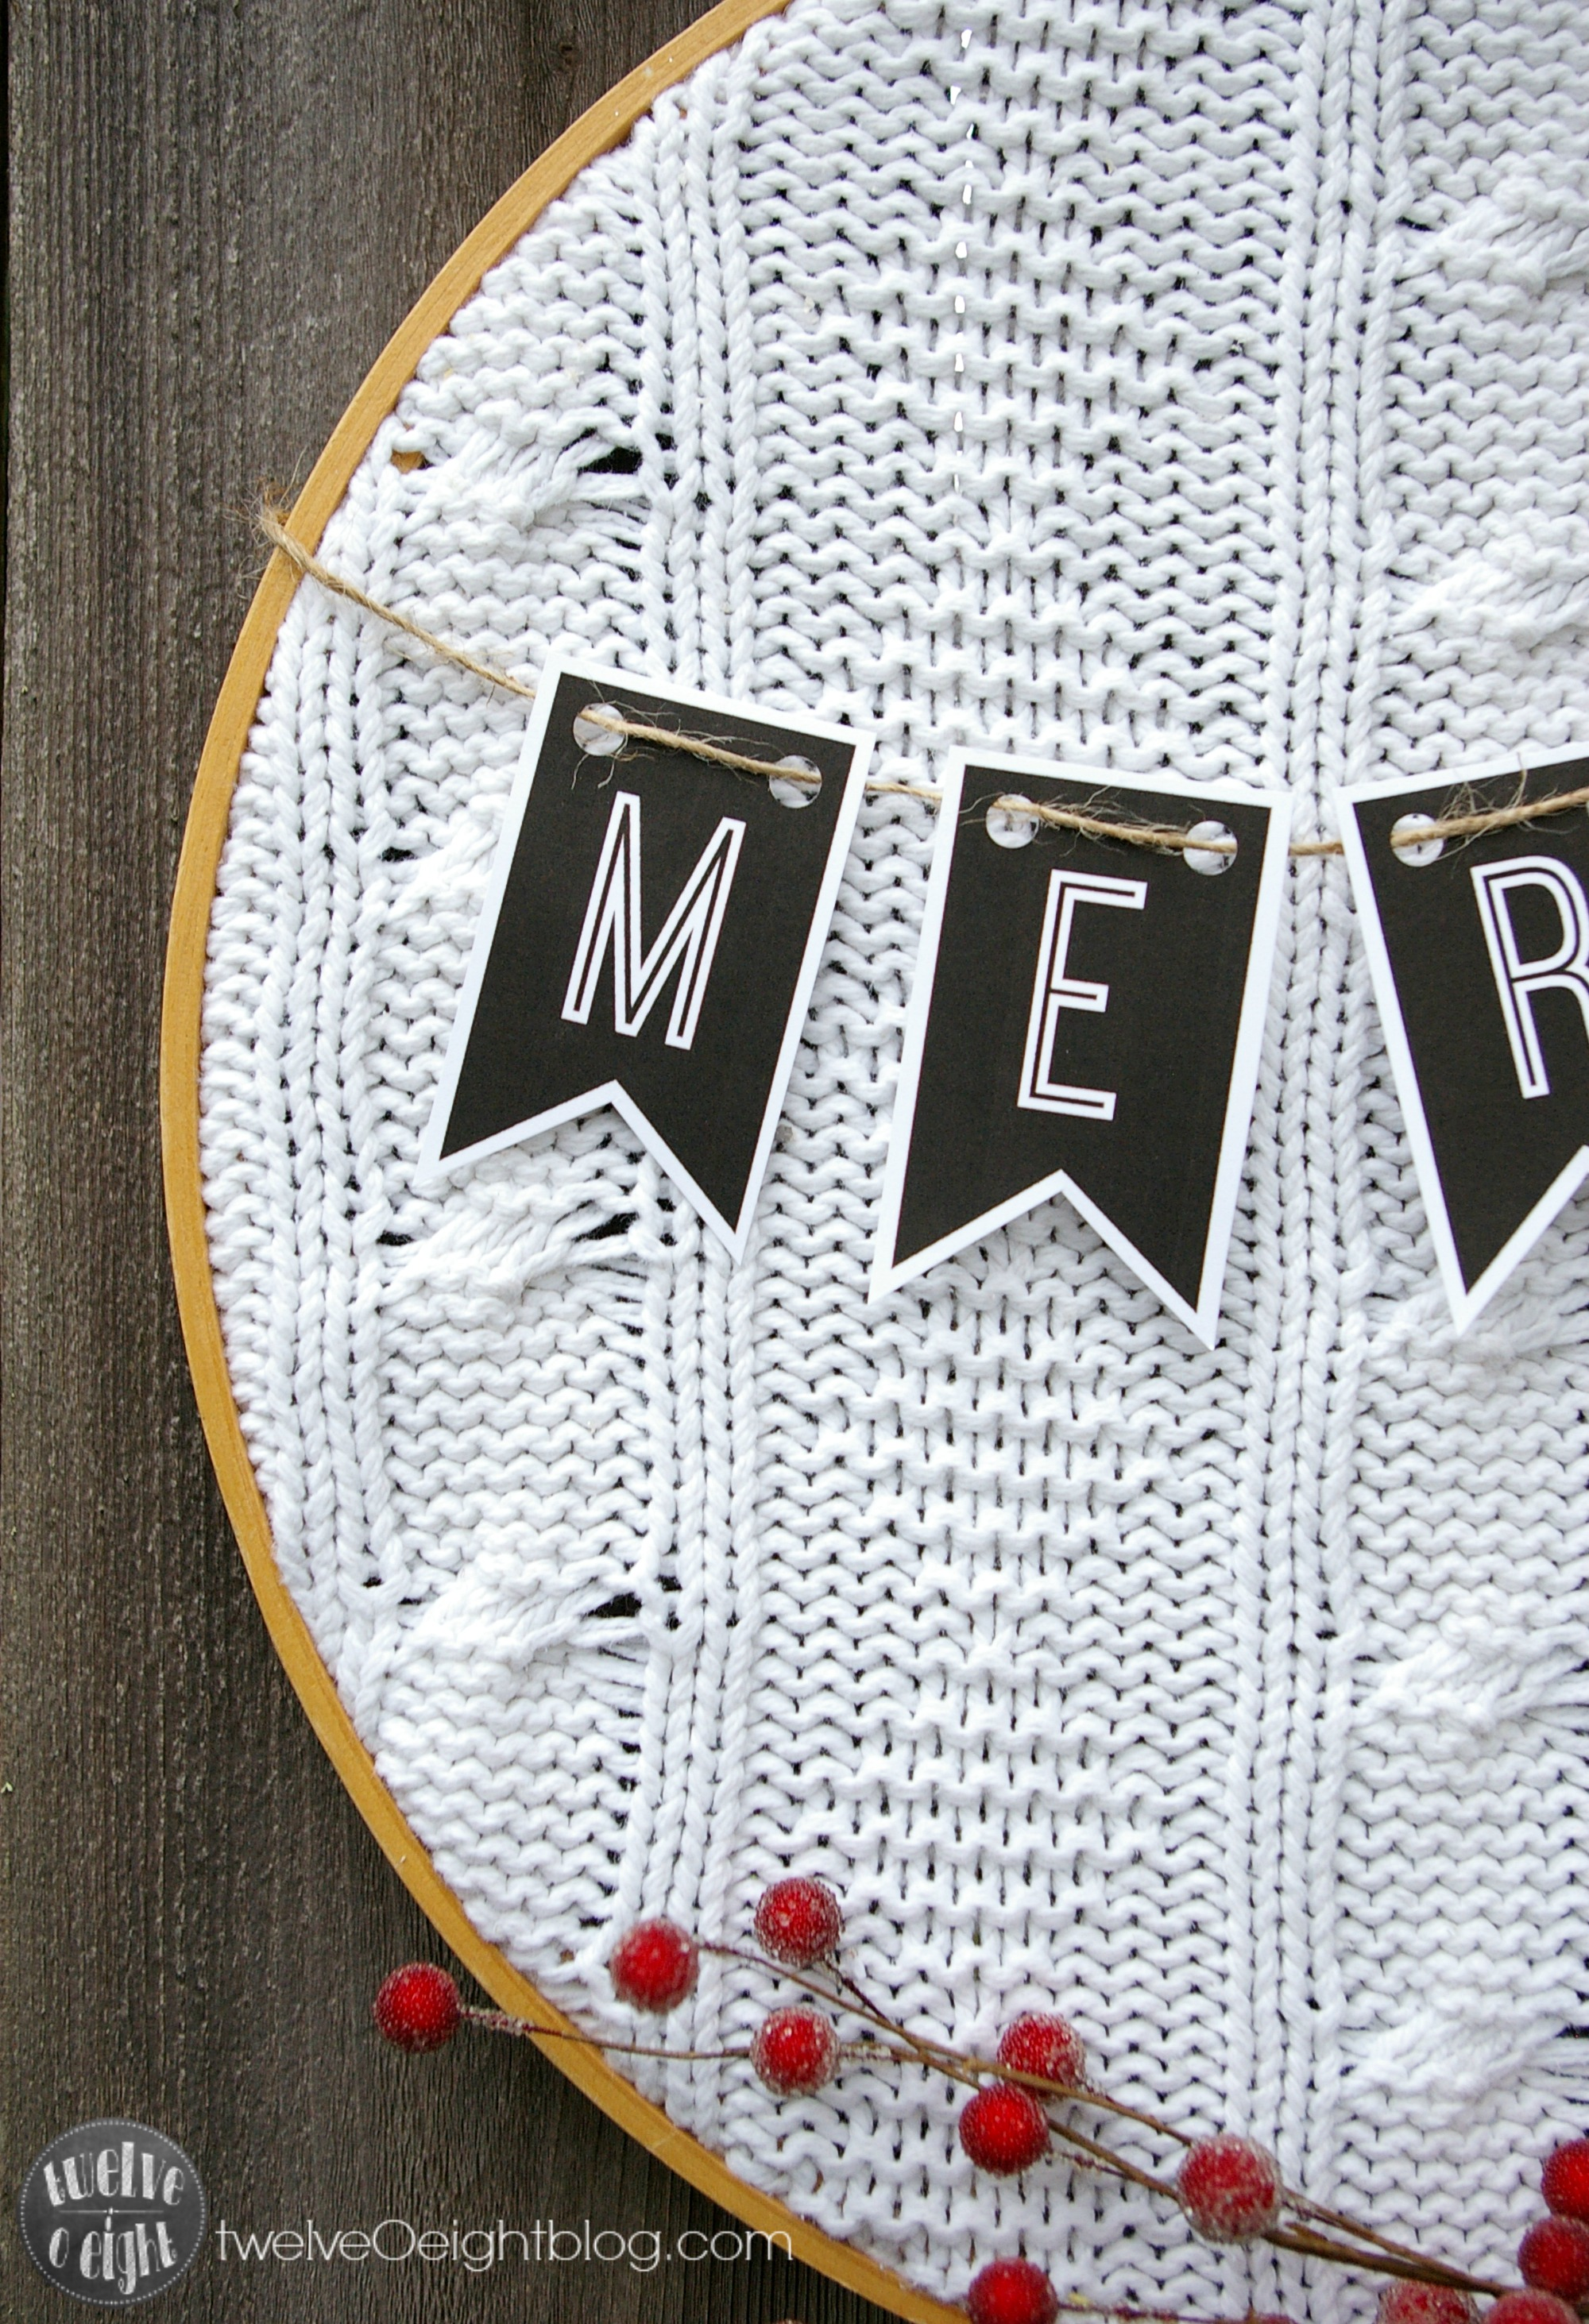 Christmas Embroidery Hoop Wreath.Upcycled Embroidery Hoop Wreath Merry Printable Banner